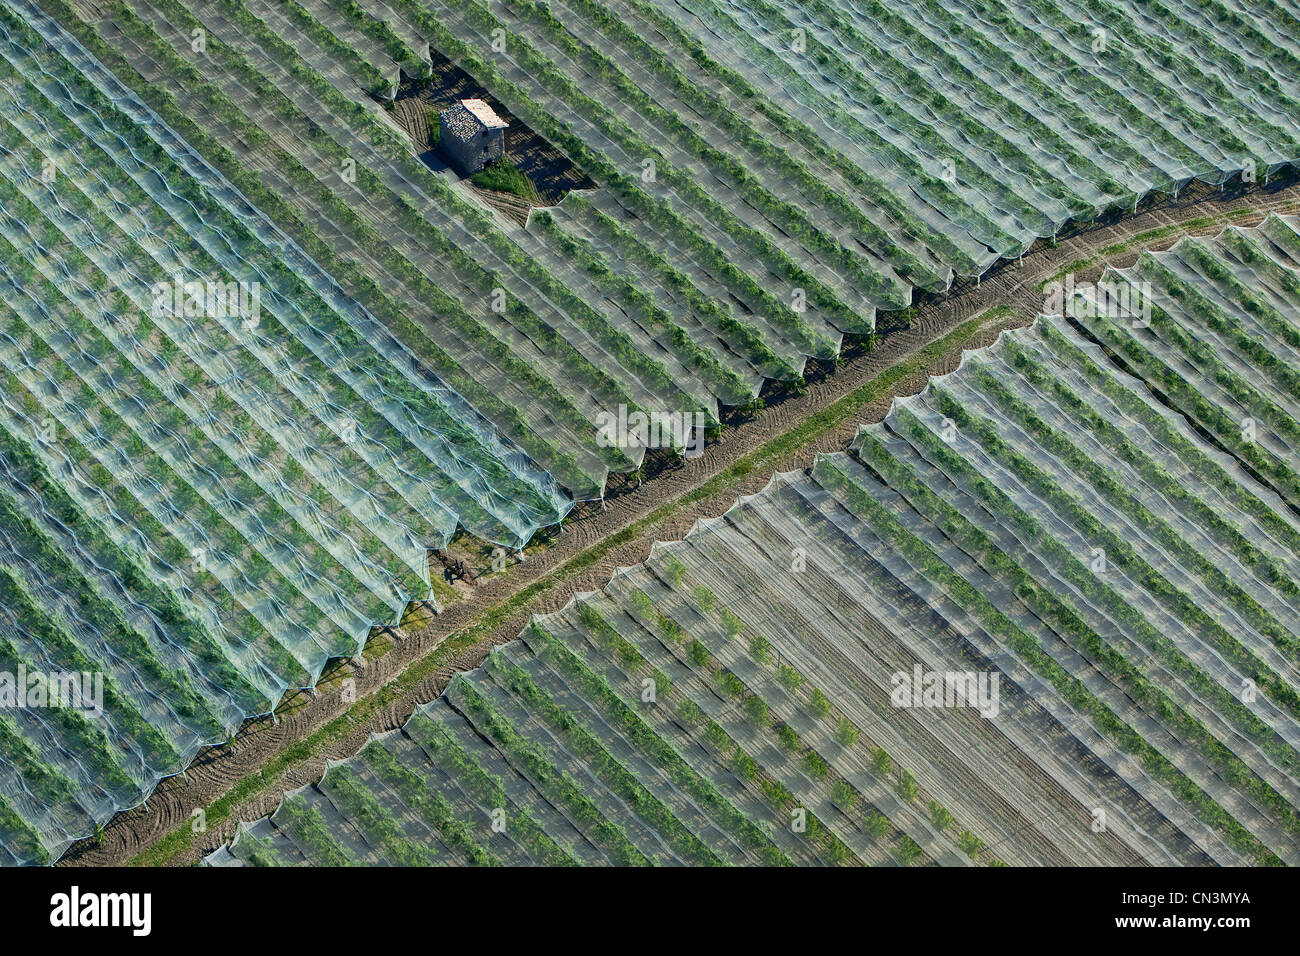 France Hautes Alpes Near Saulce Fruit Trees With Netting